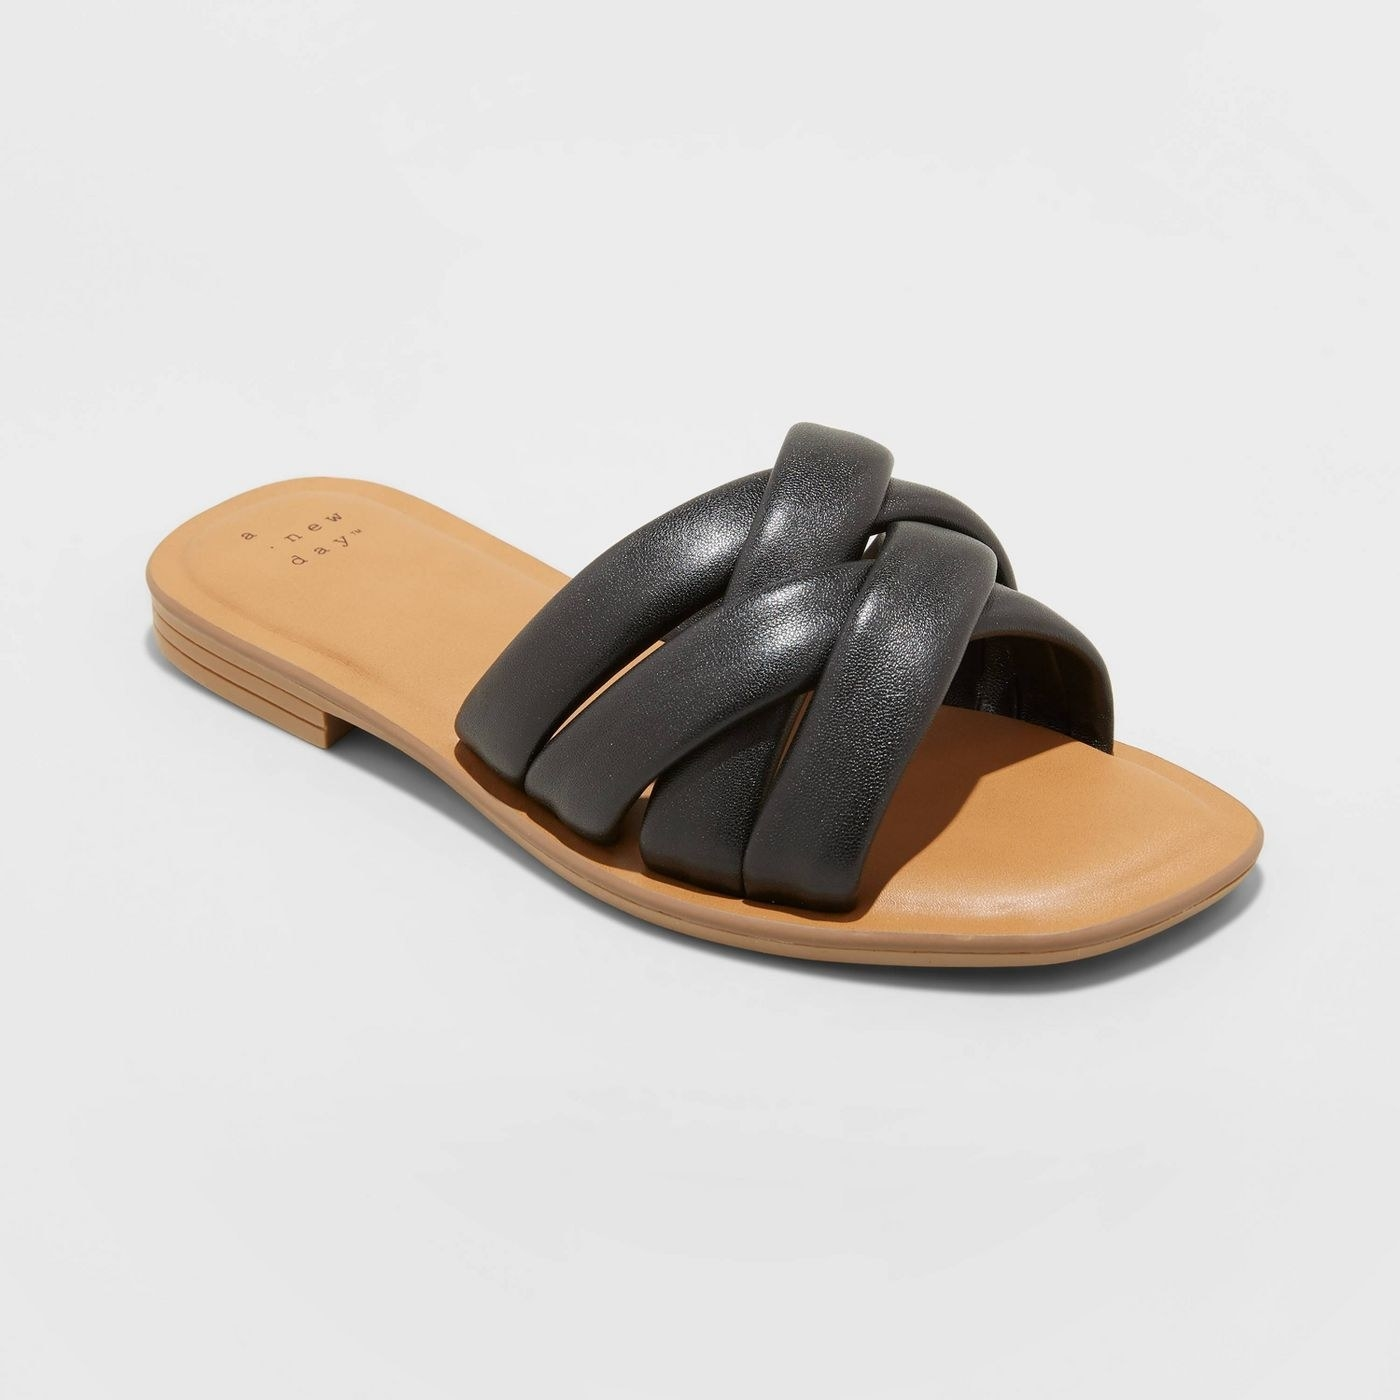 Woven, leather, puff sandal with half an inch heel and beige sole